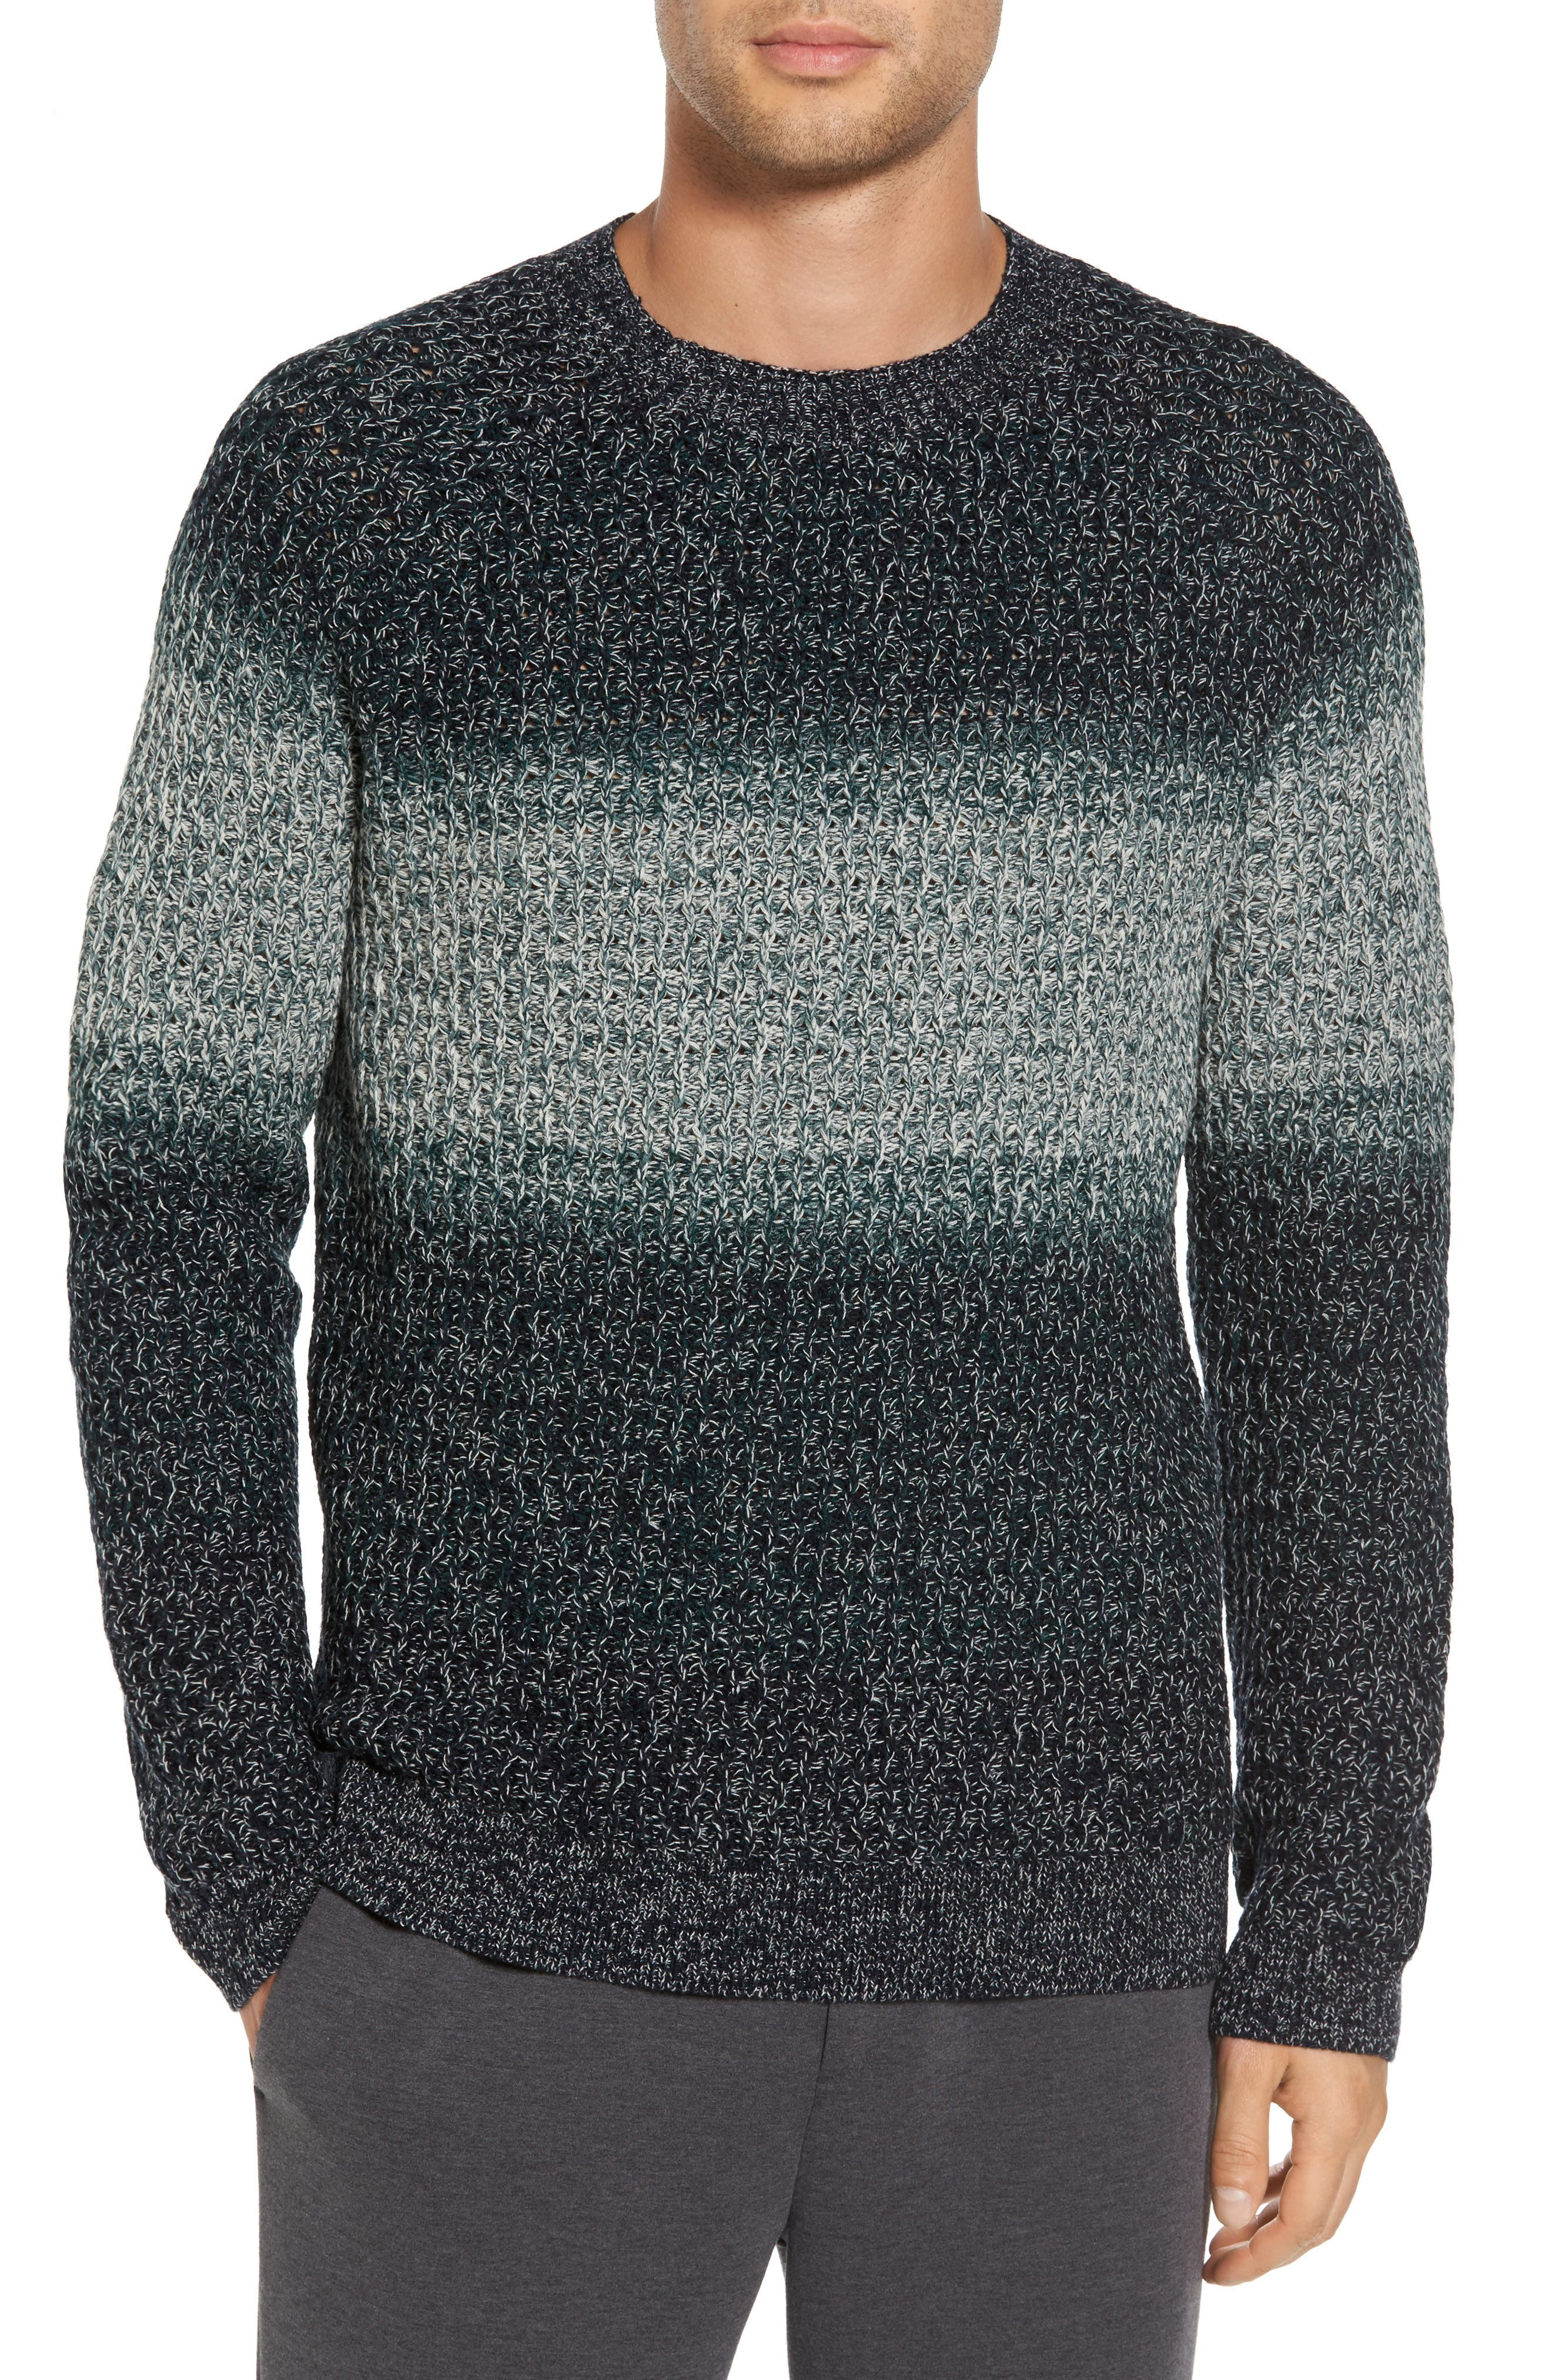 Alcone New Sovereign Wool Sweater,                             Main thumbnail 1, color,                             400